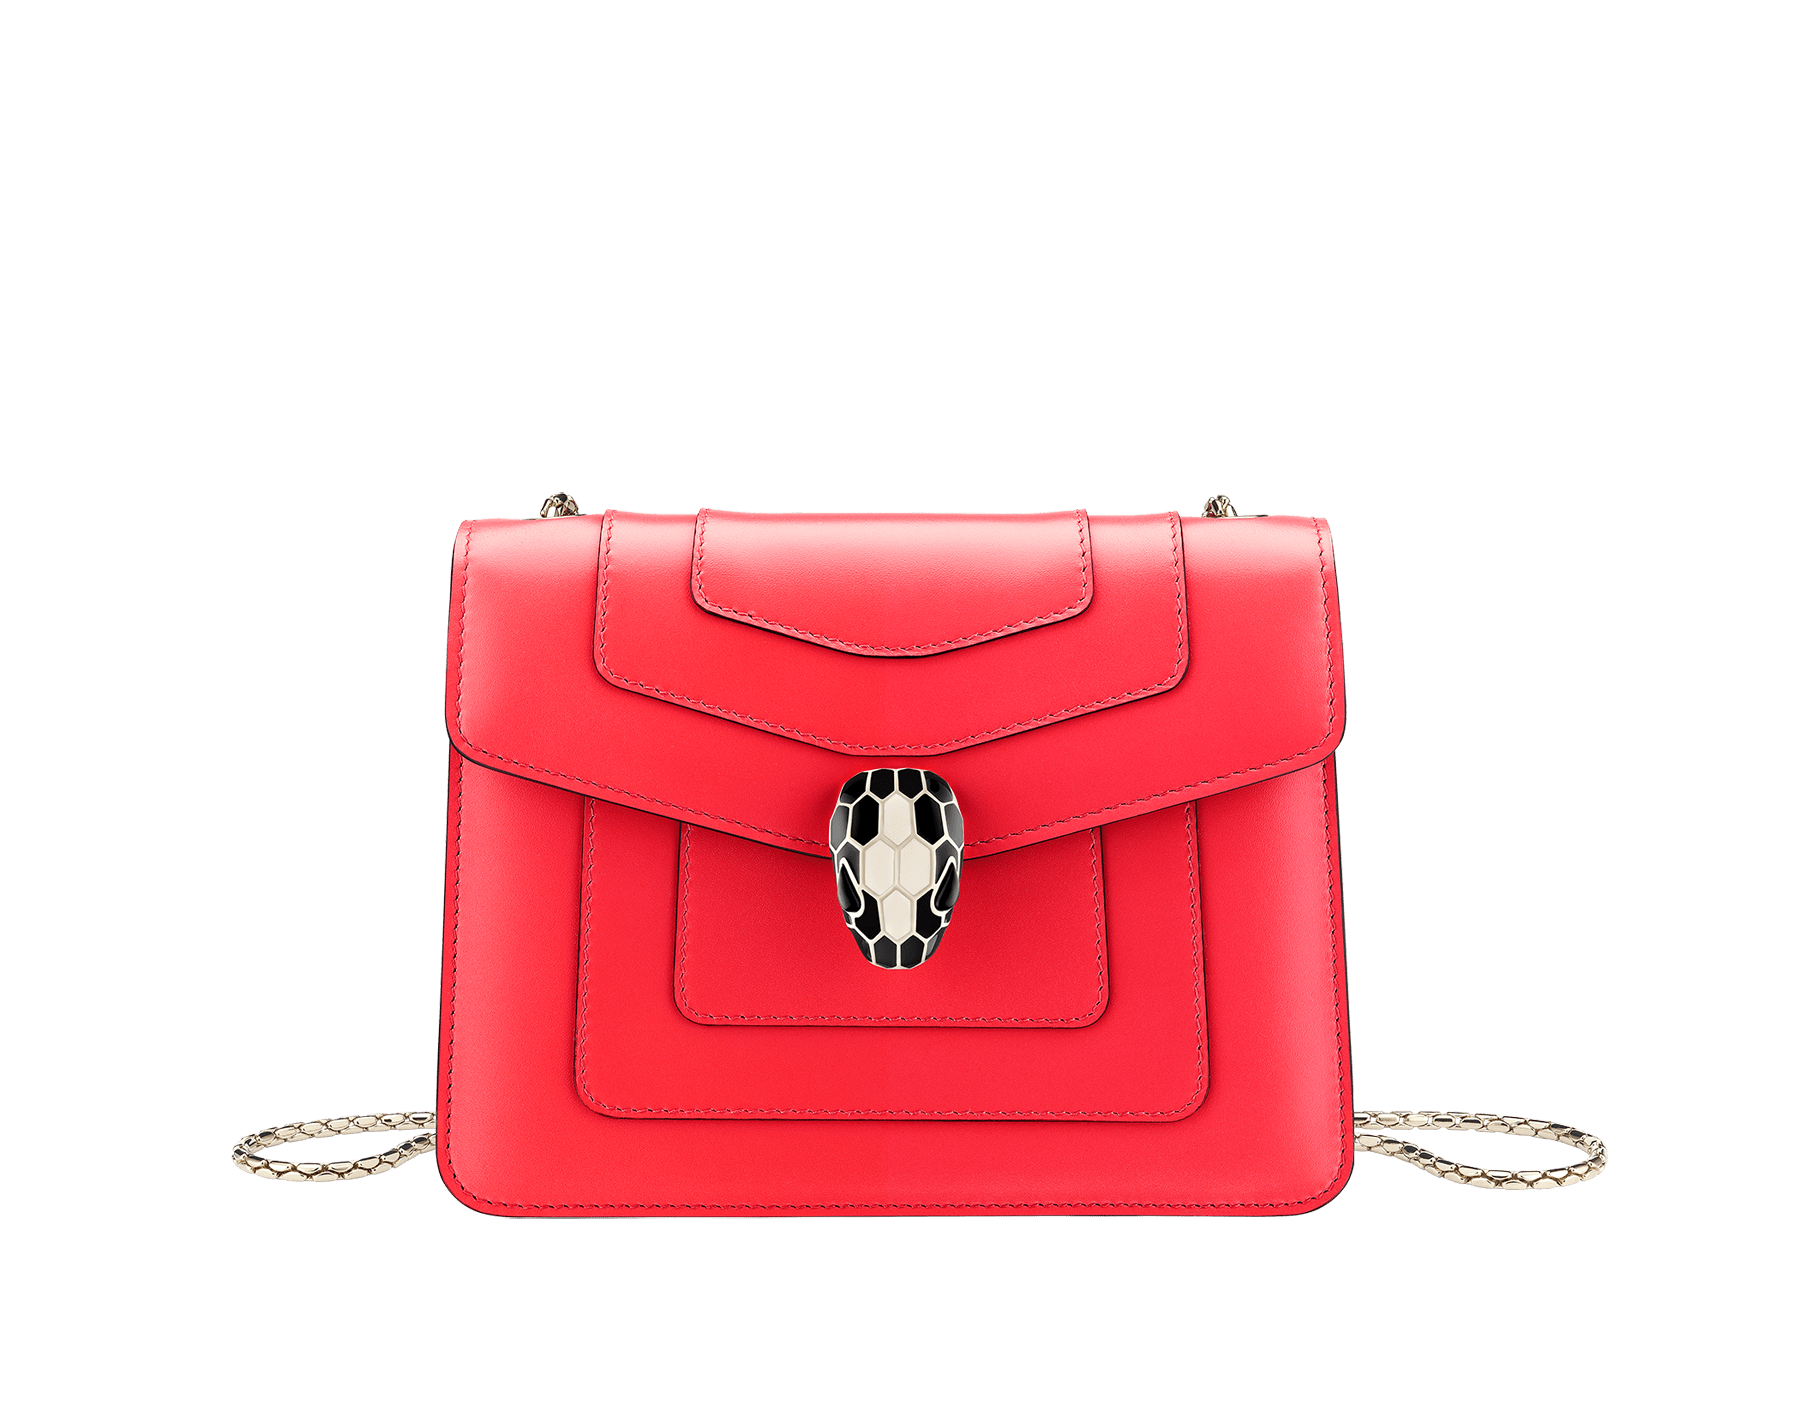 Serpenti Forever crossbody bag in sea star coral smooth calf leather body and milky opal calf leather sides. Snakehead closure in light gold plated brass decorated with milky opal and black enamel, and black onyx eyes. 287959 image 1